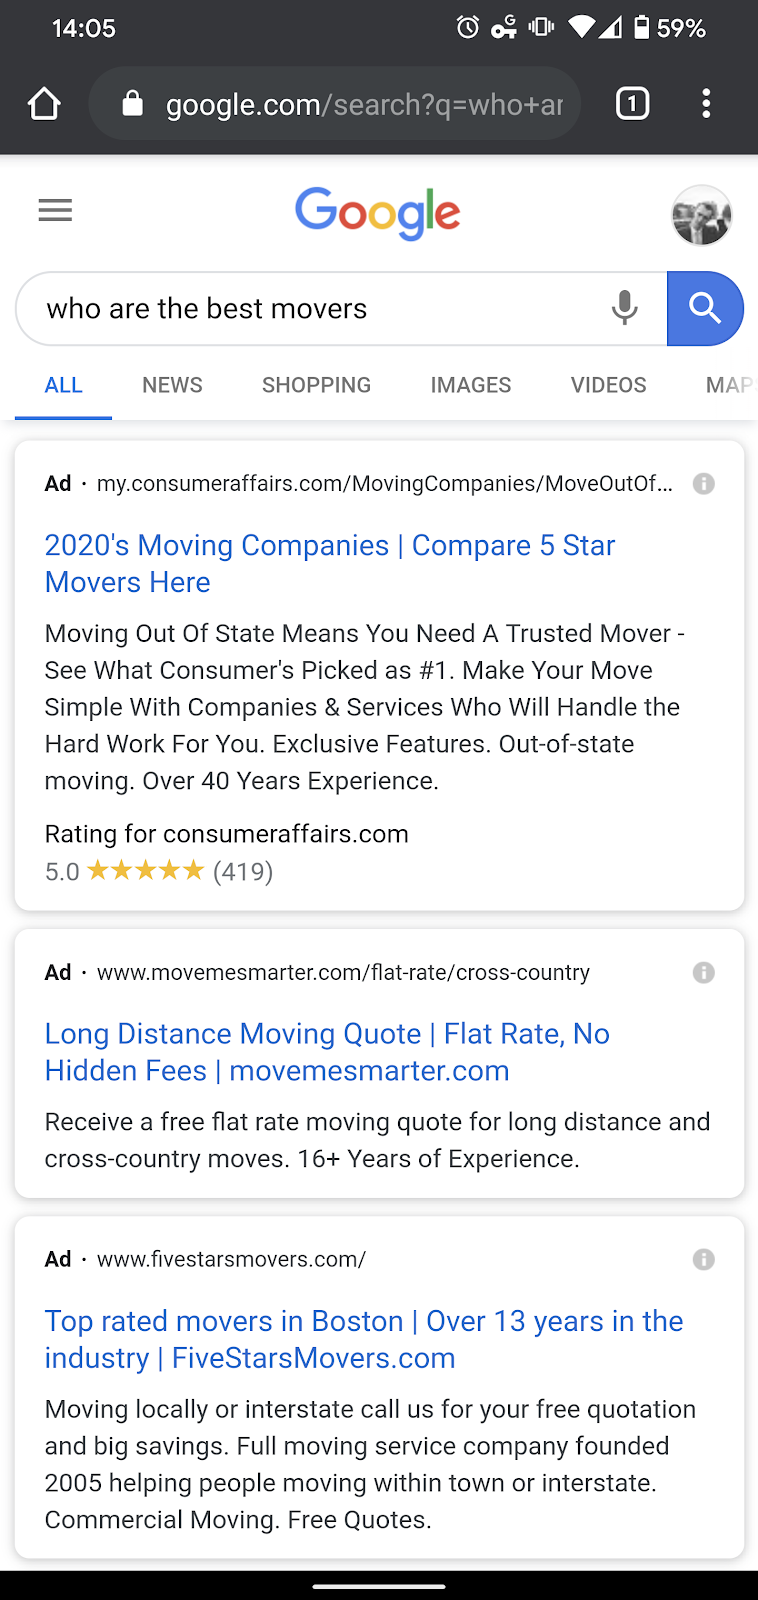 Paid search advertising example